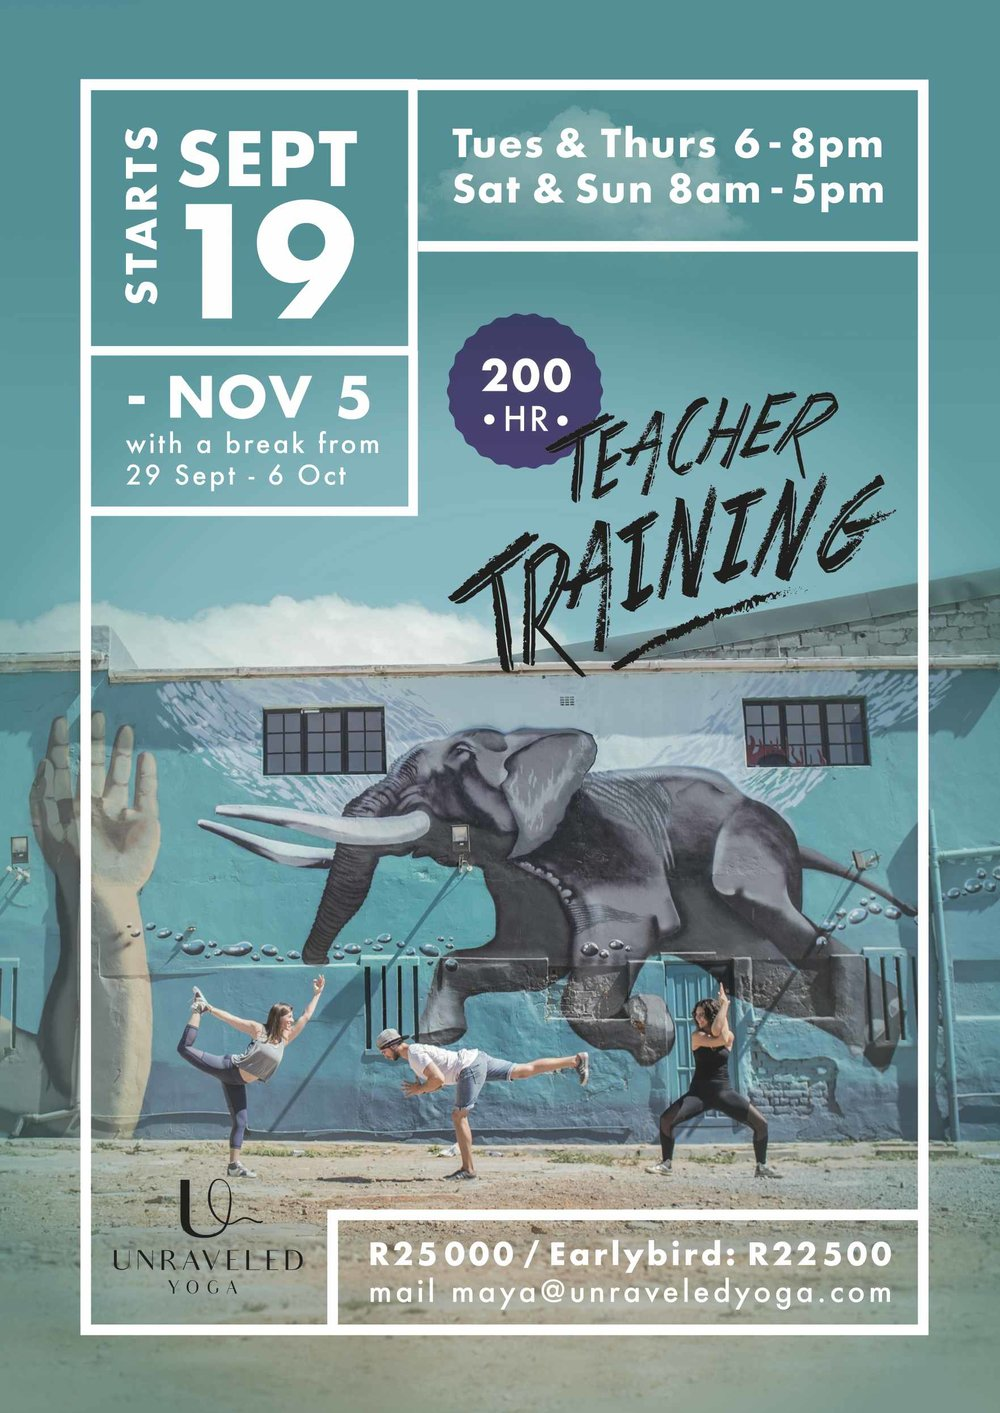 Cape Town Yoga Teacher Training 200 hour yoga teacher